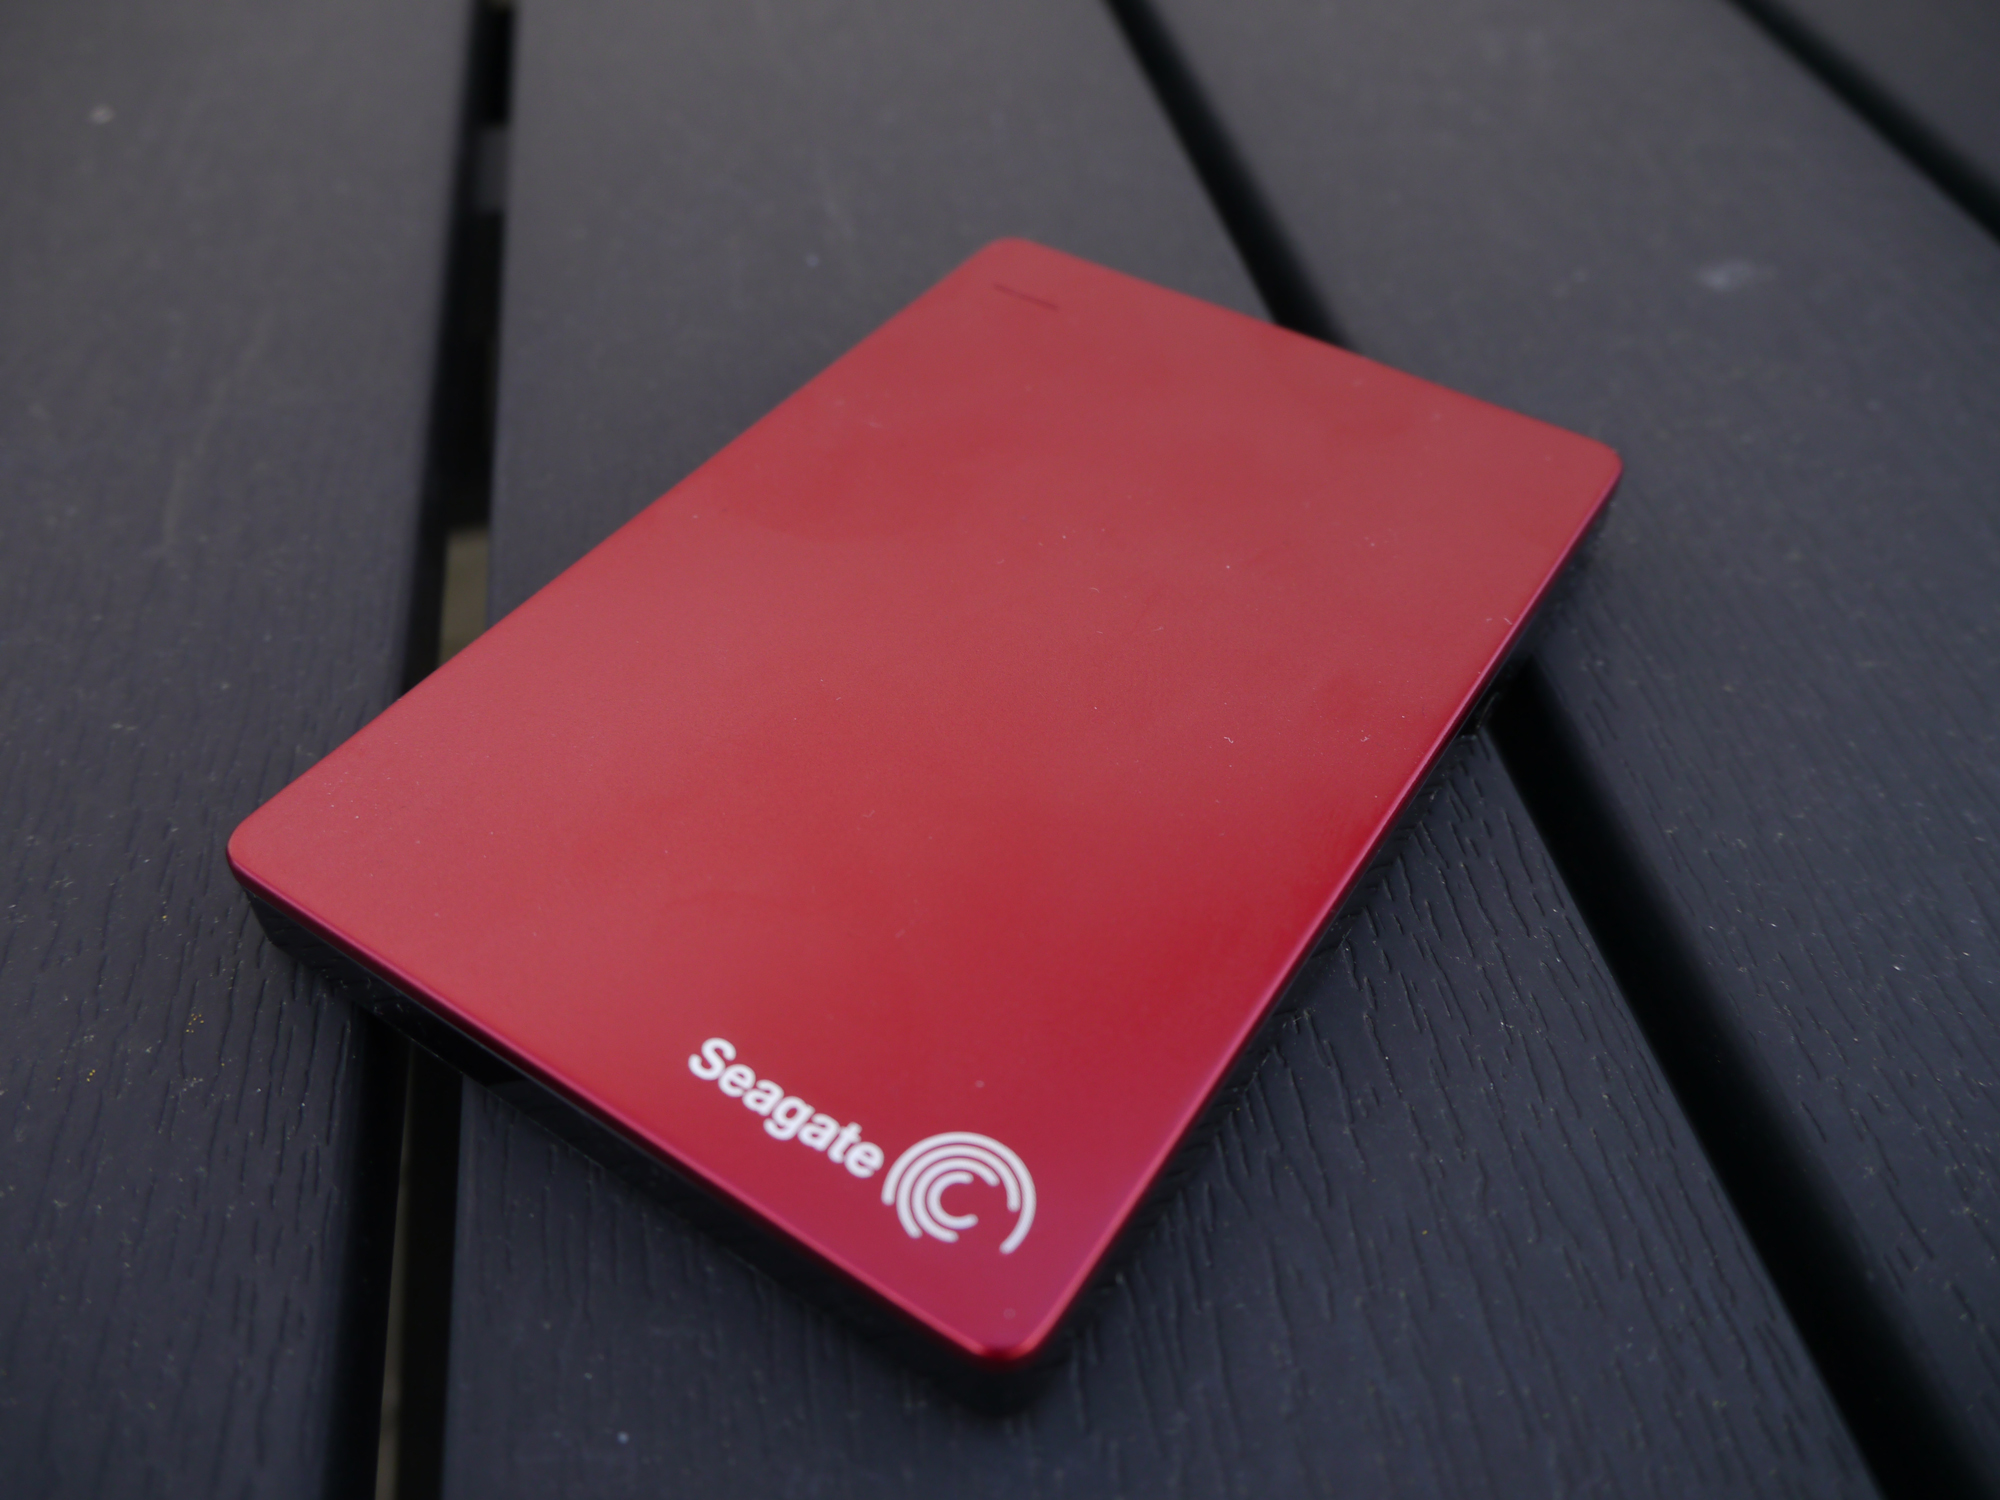 Anmeldelse Seagate Backup Plus Slim Portable 1tb Red 2edition 01